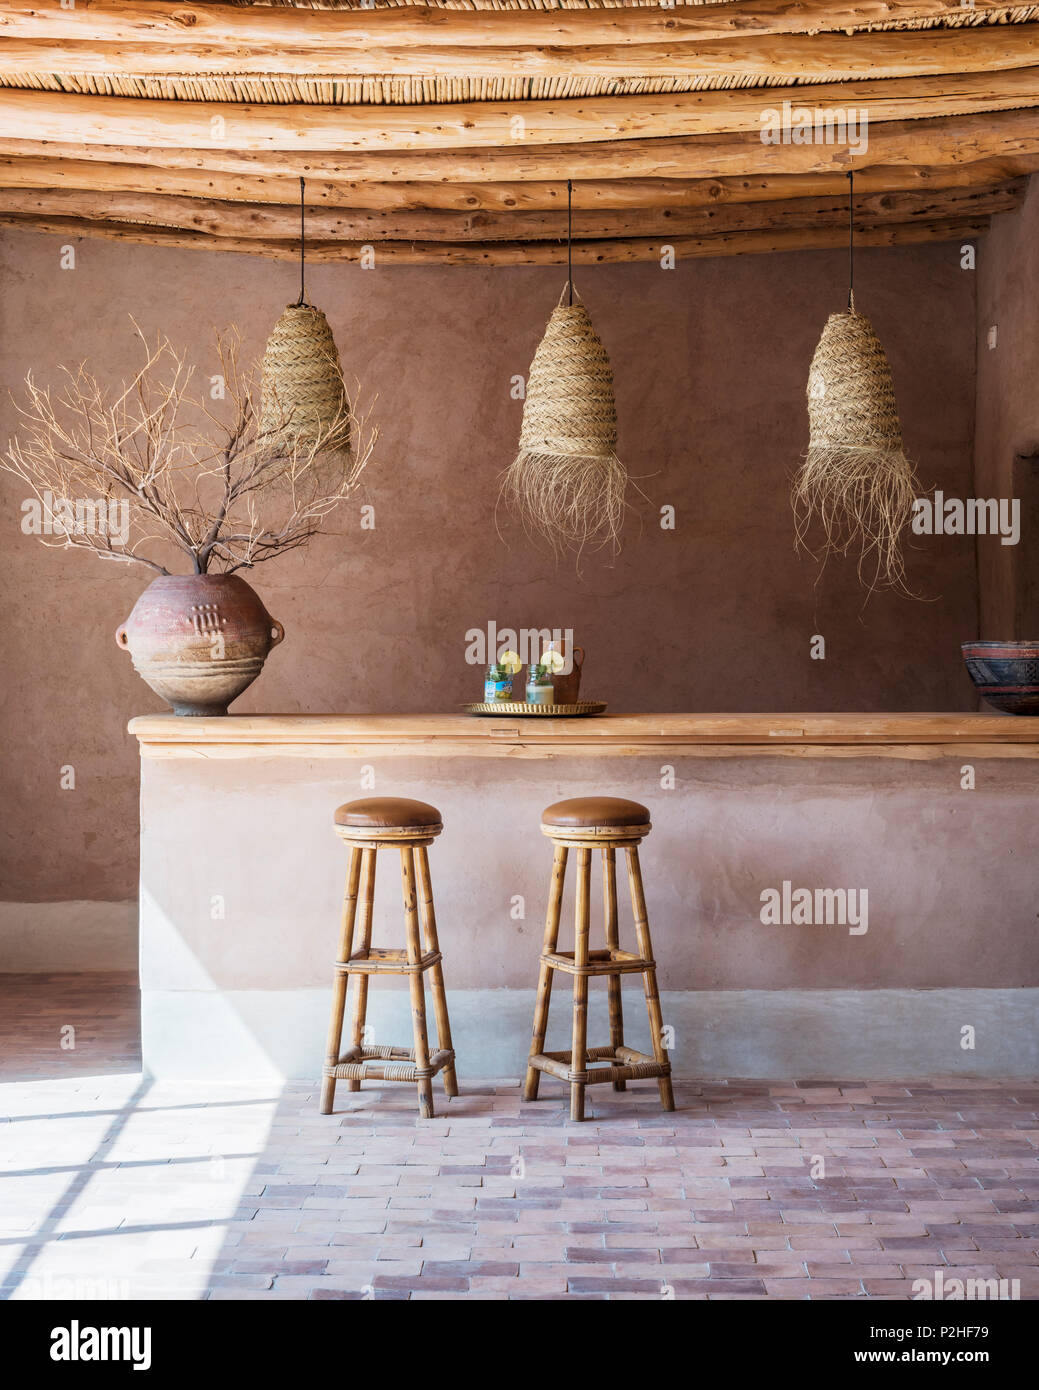 Rattan Lanterns Hang Above Counter With Bamboo Bar Stools In Bar With Wood Ceiling And Terracotta Floor The Antique Pot Comes From East Africa Stock Photo Alamy